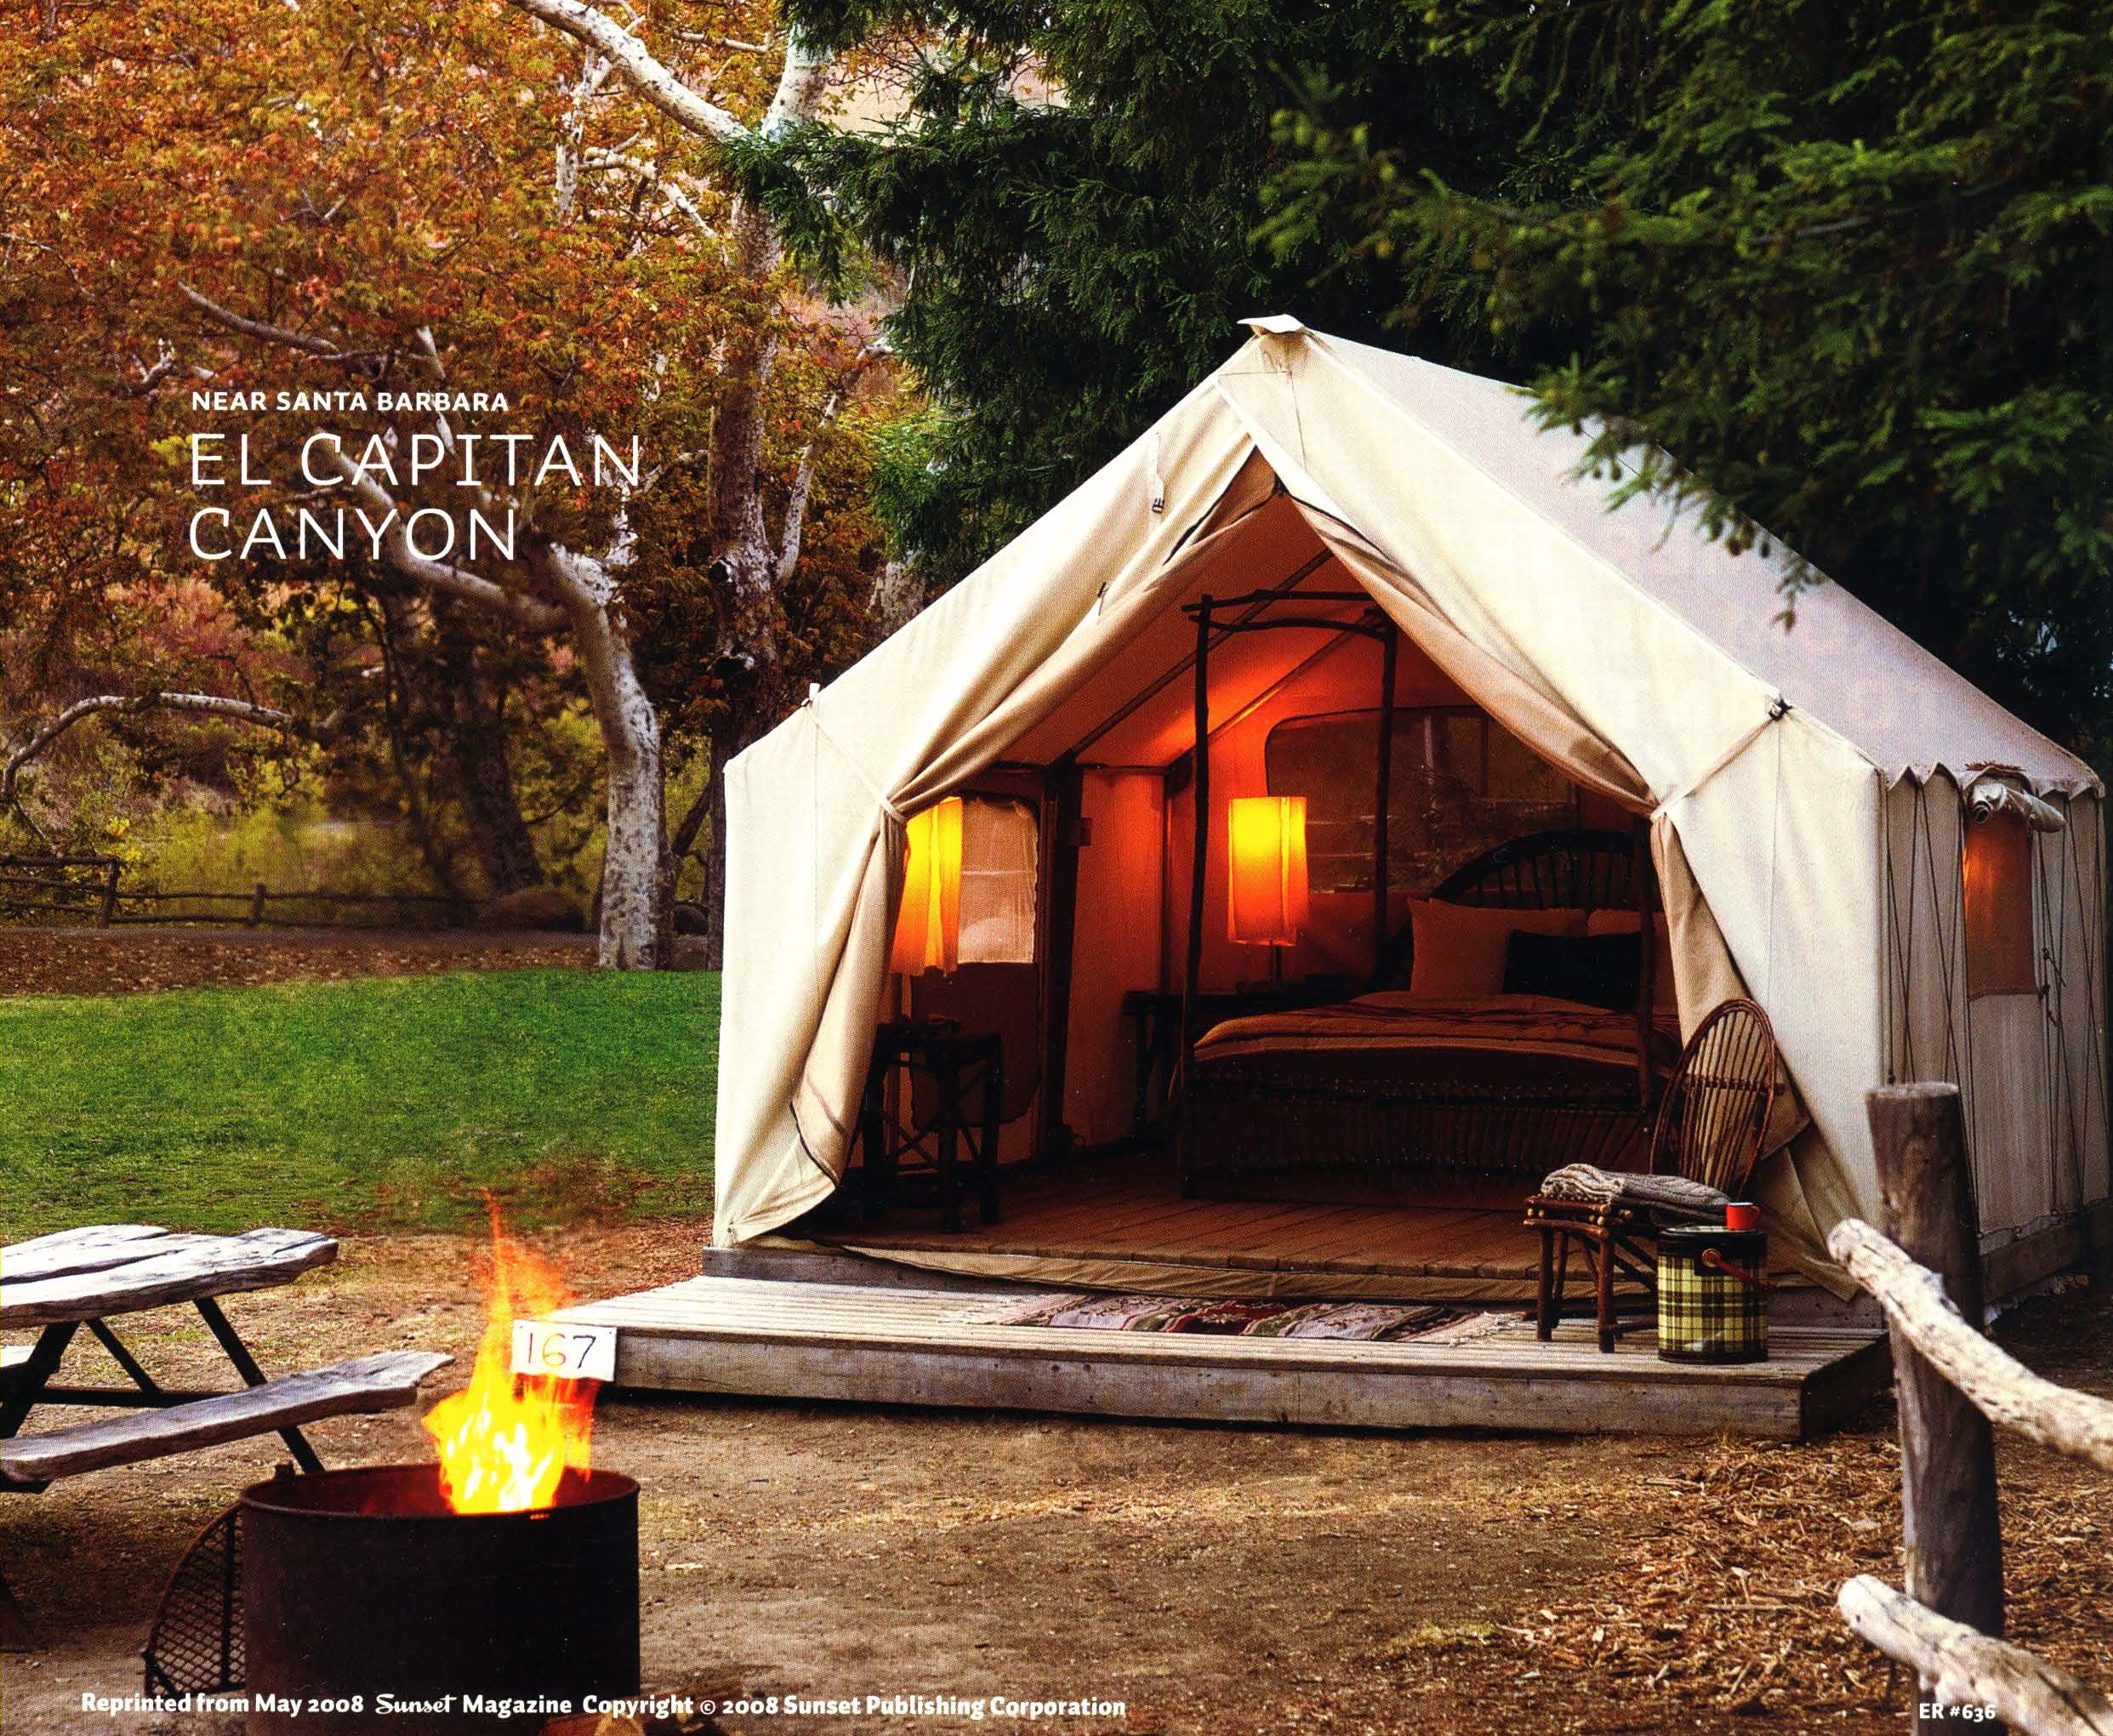 Safari Tents - Each canvas tent measures a spacious 12′ x 14′ and is built on a permanent raised wooden deck. All tents have two double beds, screened windows and zip-down flaps, are supplied with bed linens and towels, furnished with bedside tables, chairs, a small desk, storage trunk and coat hooks. Tents are also provided with a small heater and electric lamps for lighting.